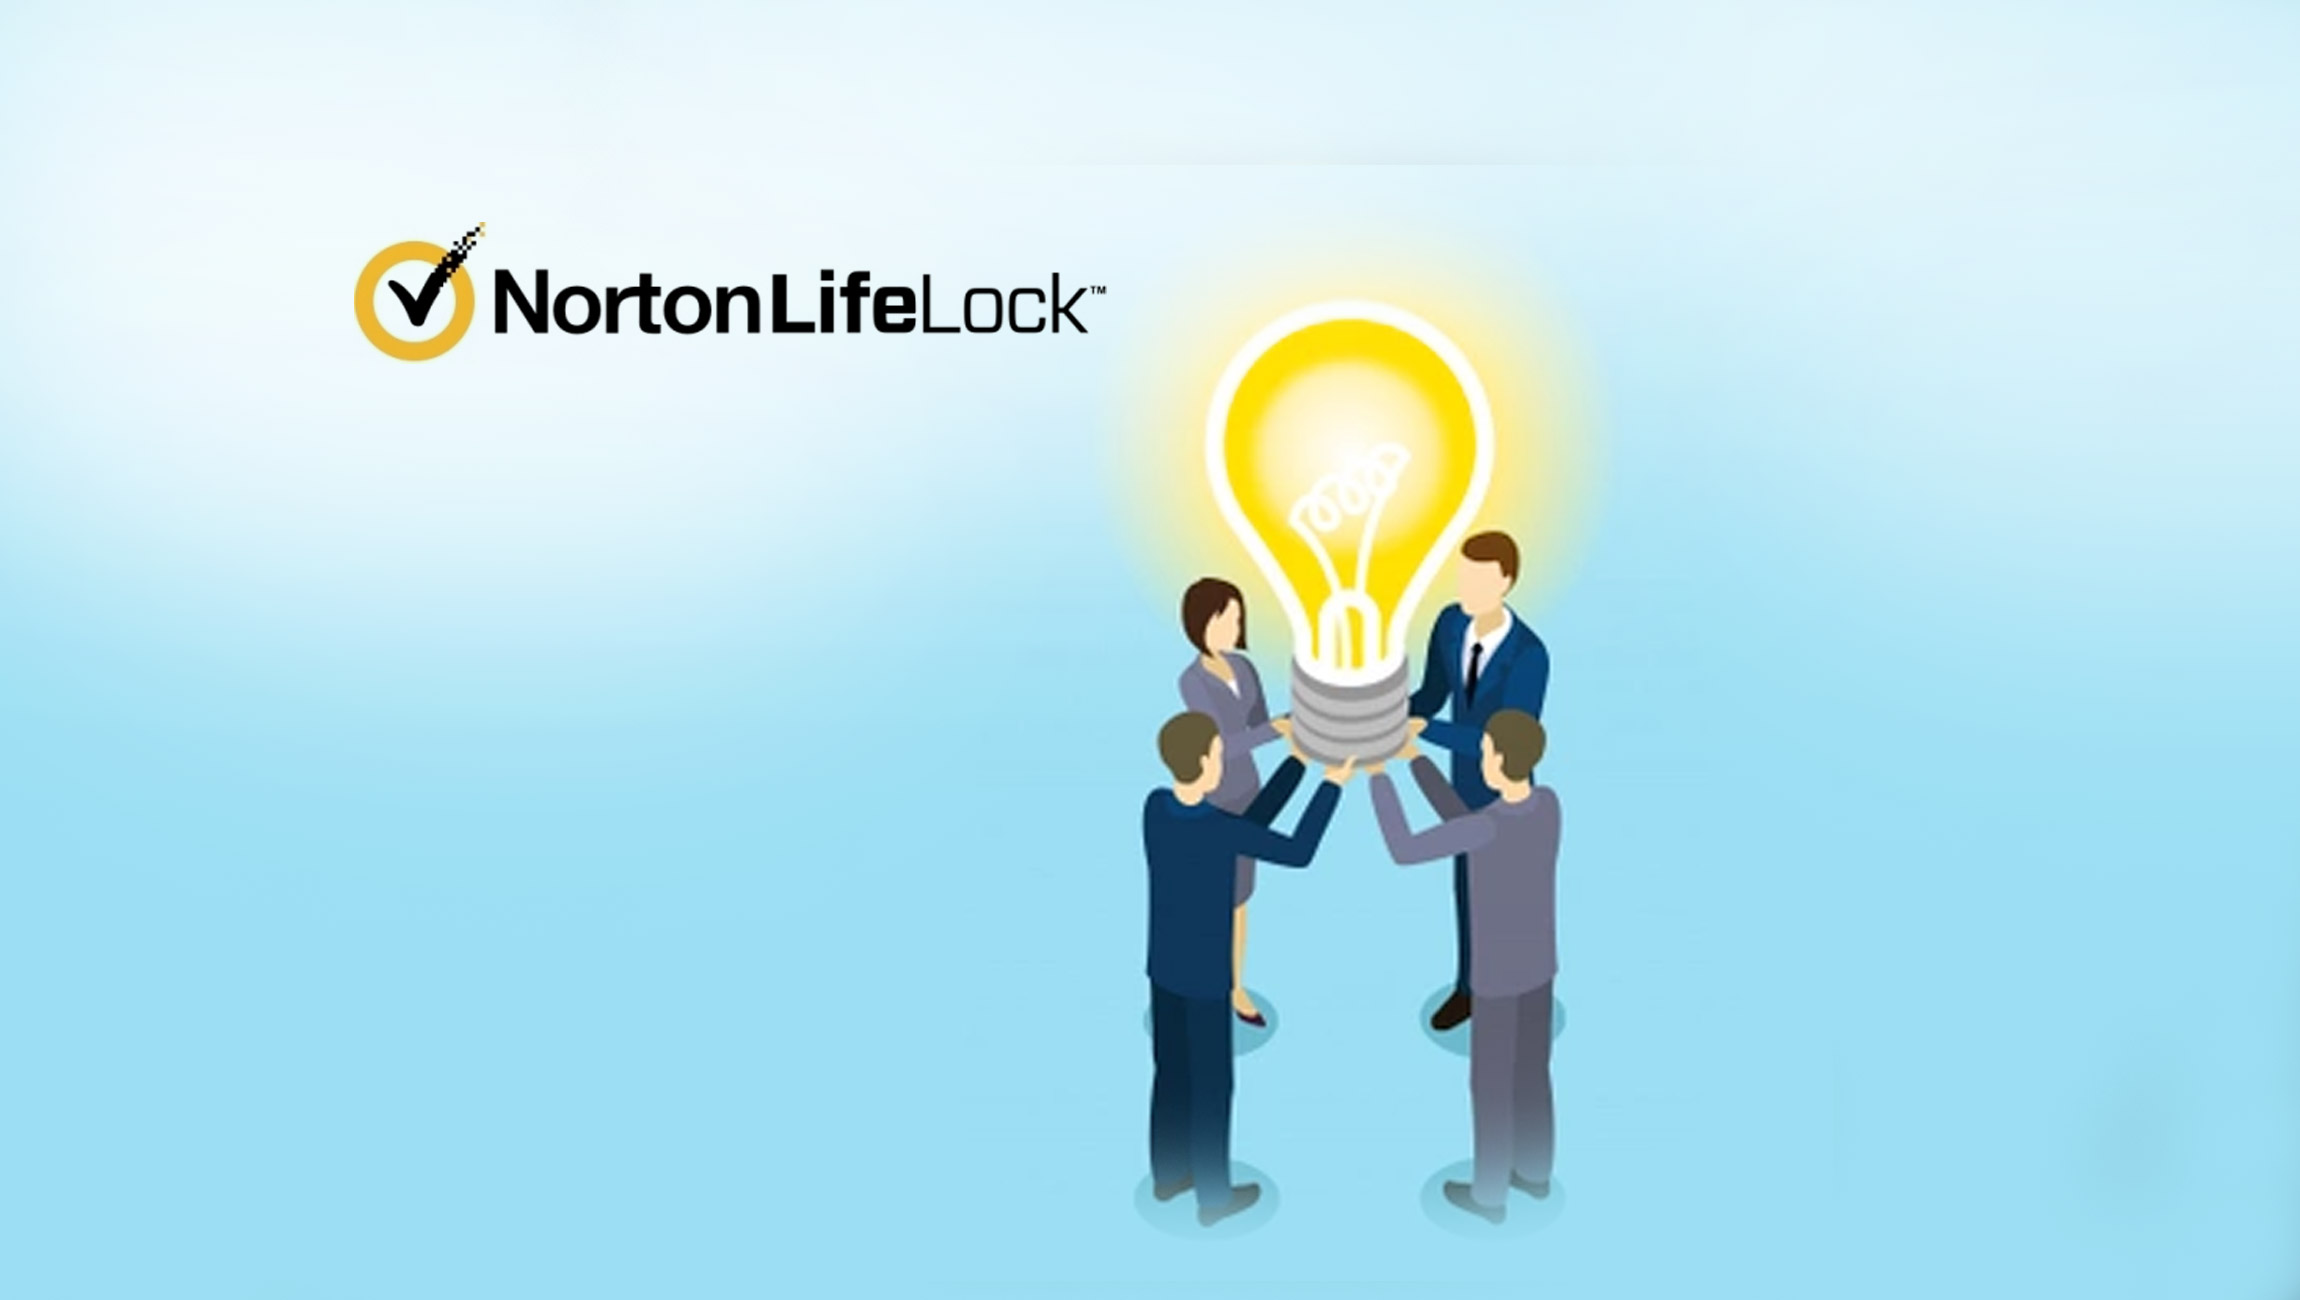 NortonLifeLock Recognized as Top Company of 2021 for Innovation in Sales and Marketing Technology